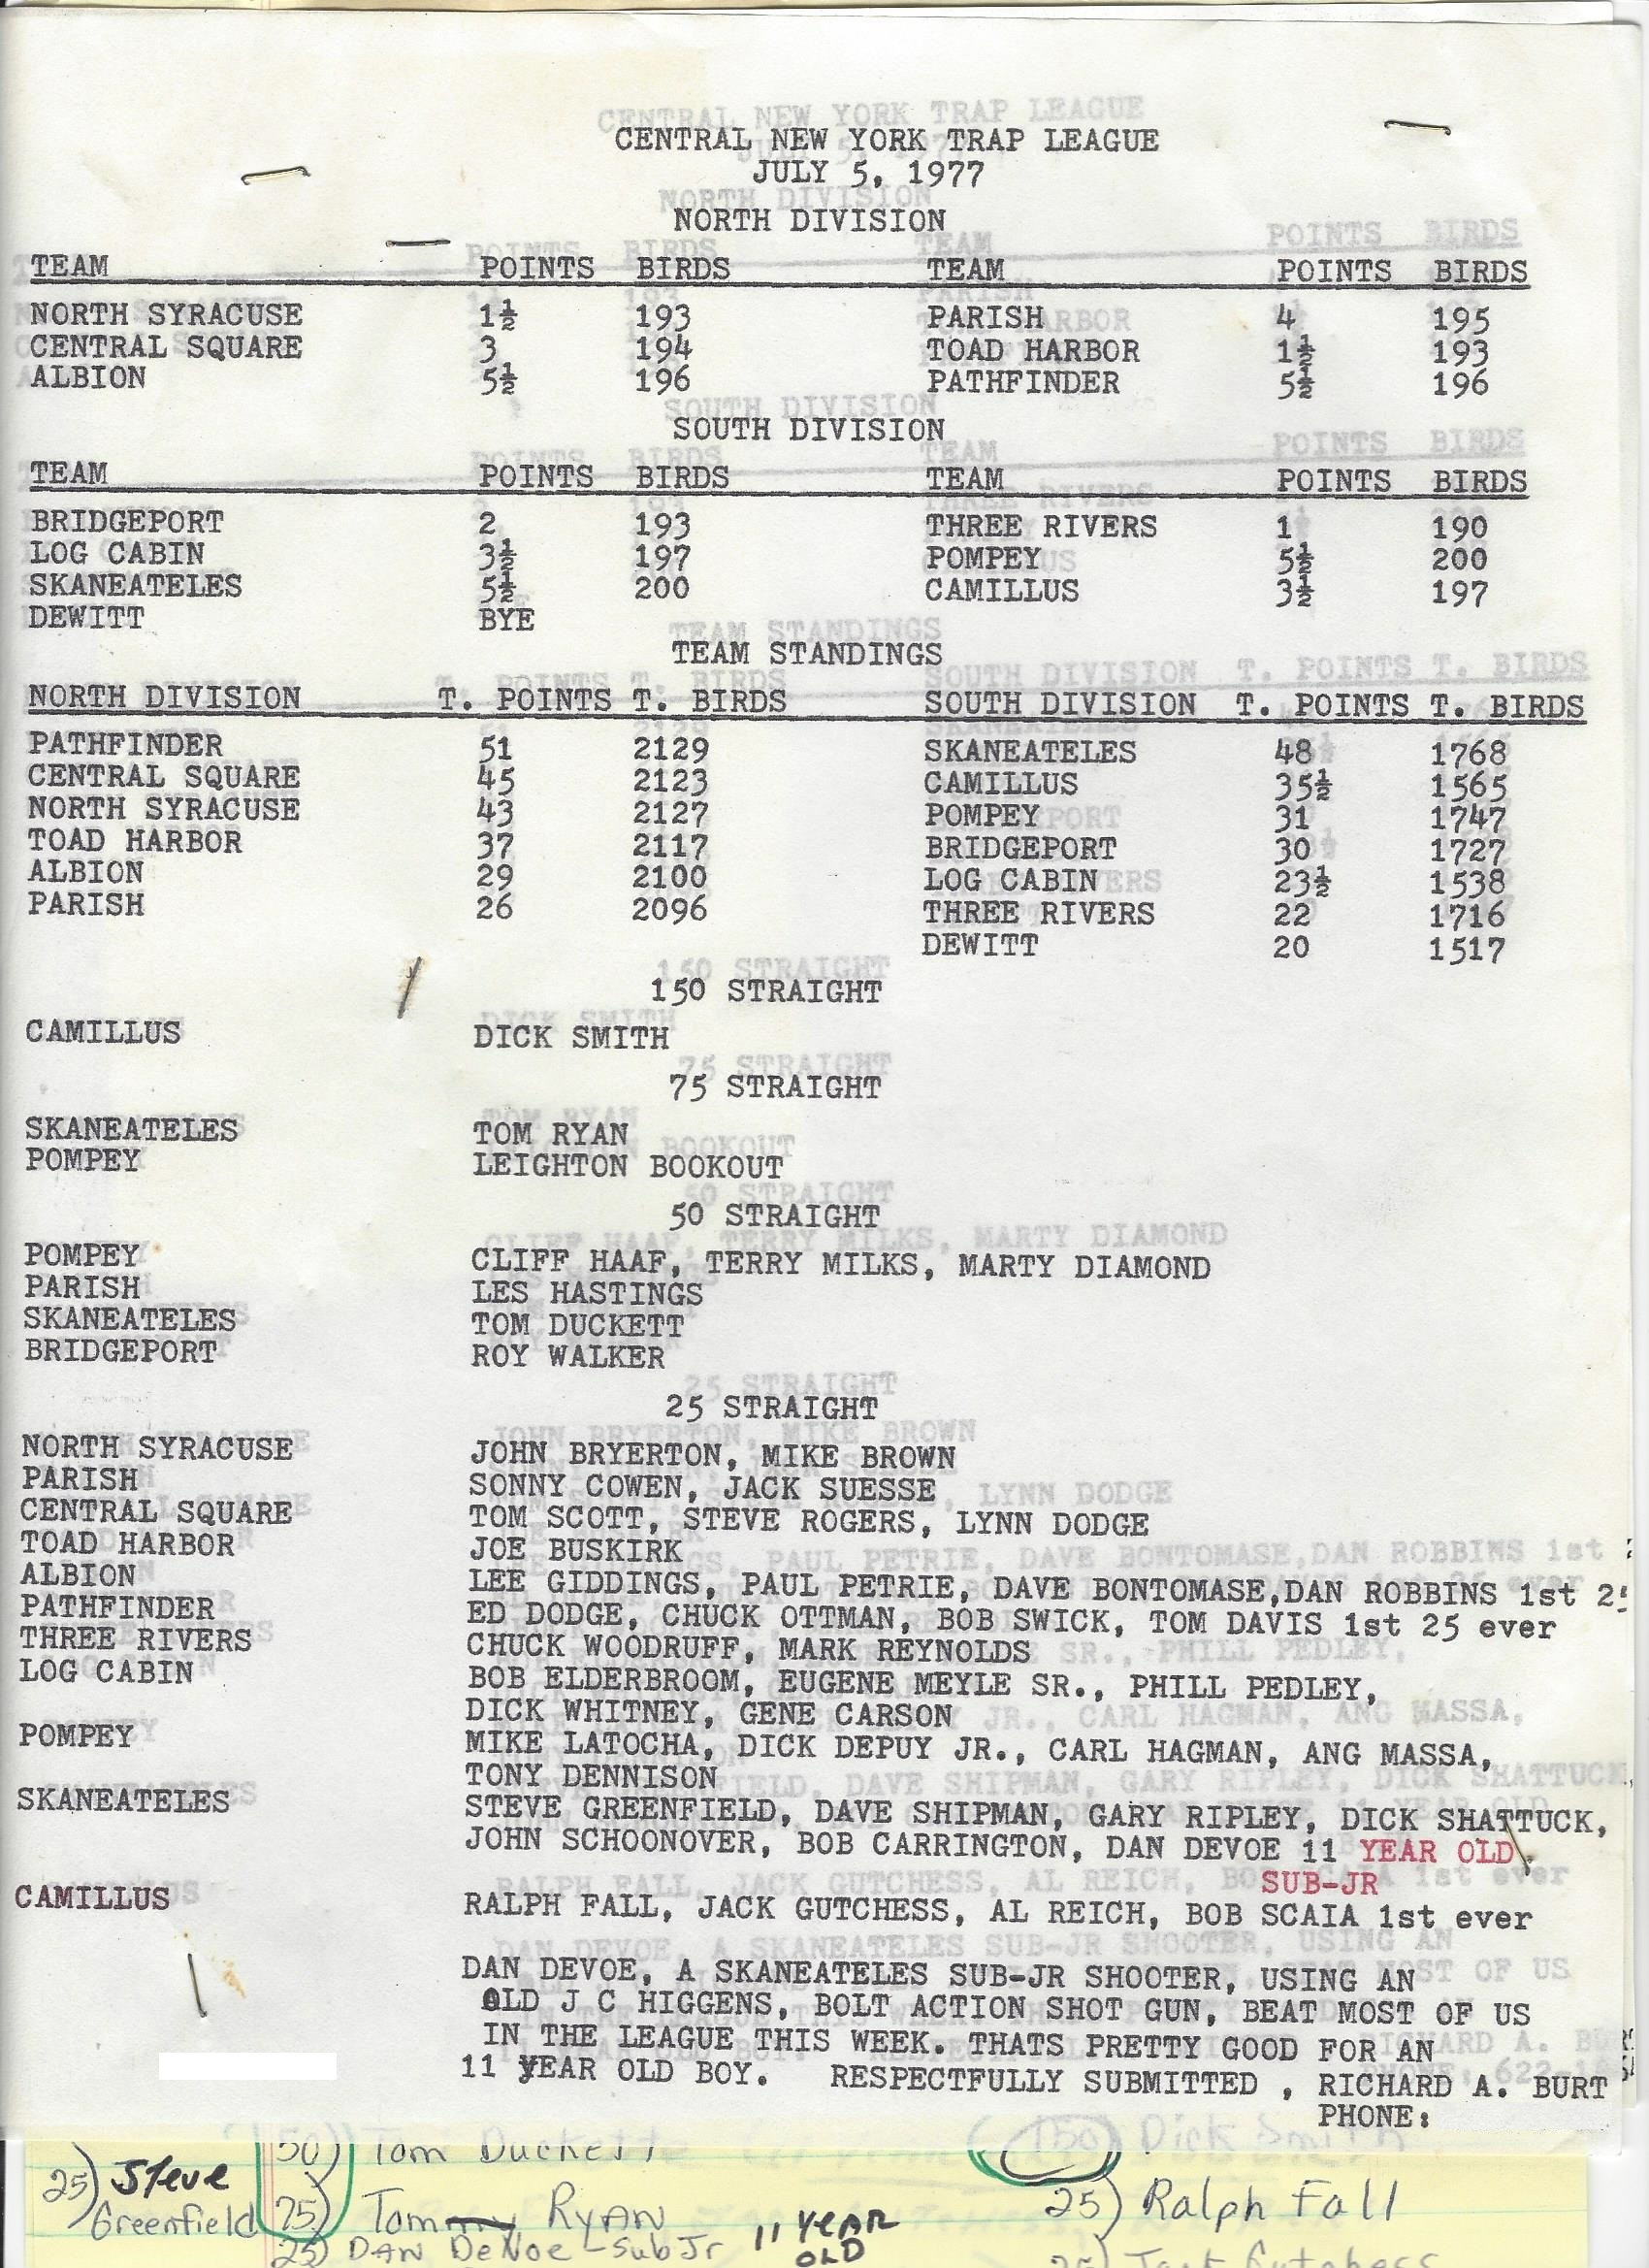 CNYTL JULY 5 1977 RESULTS